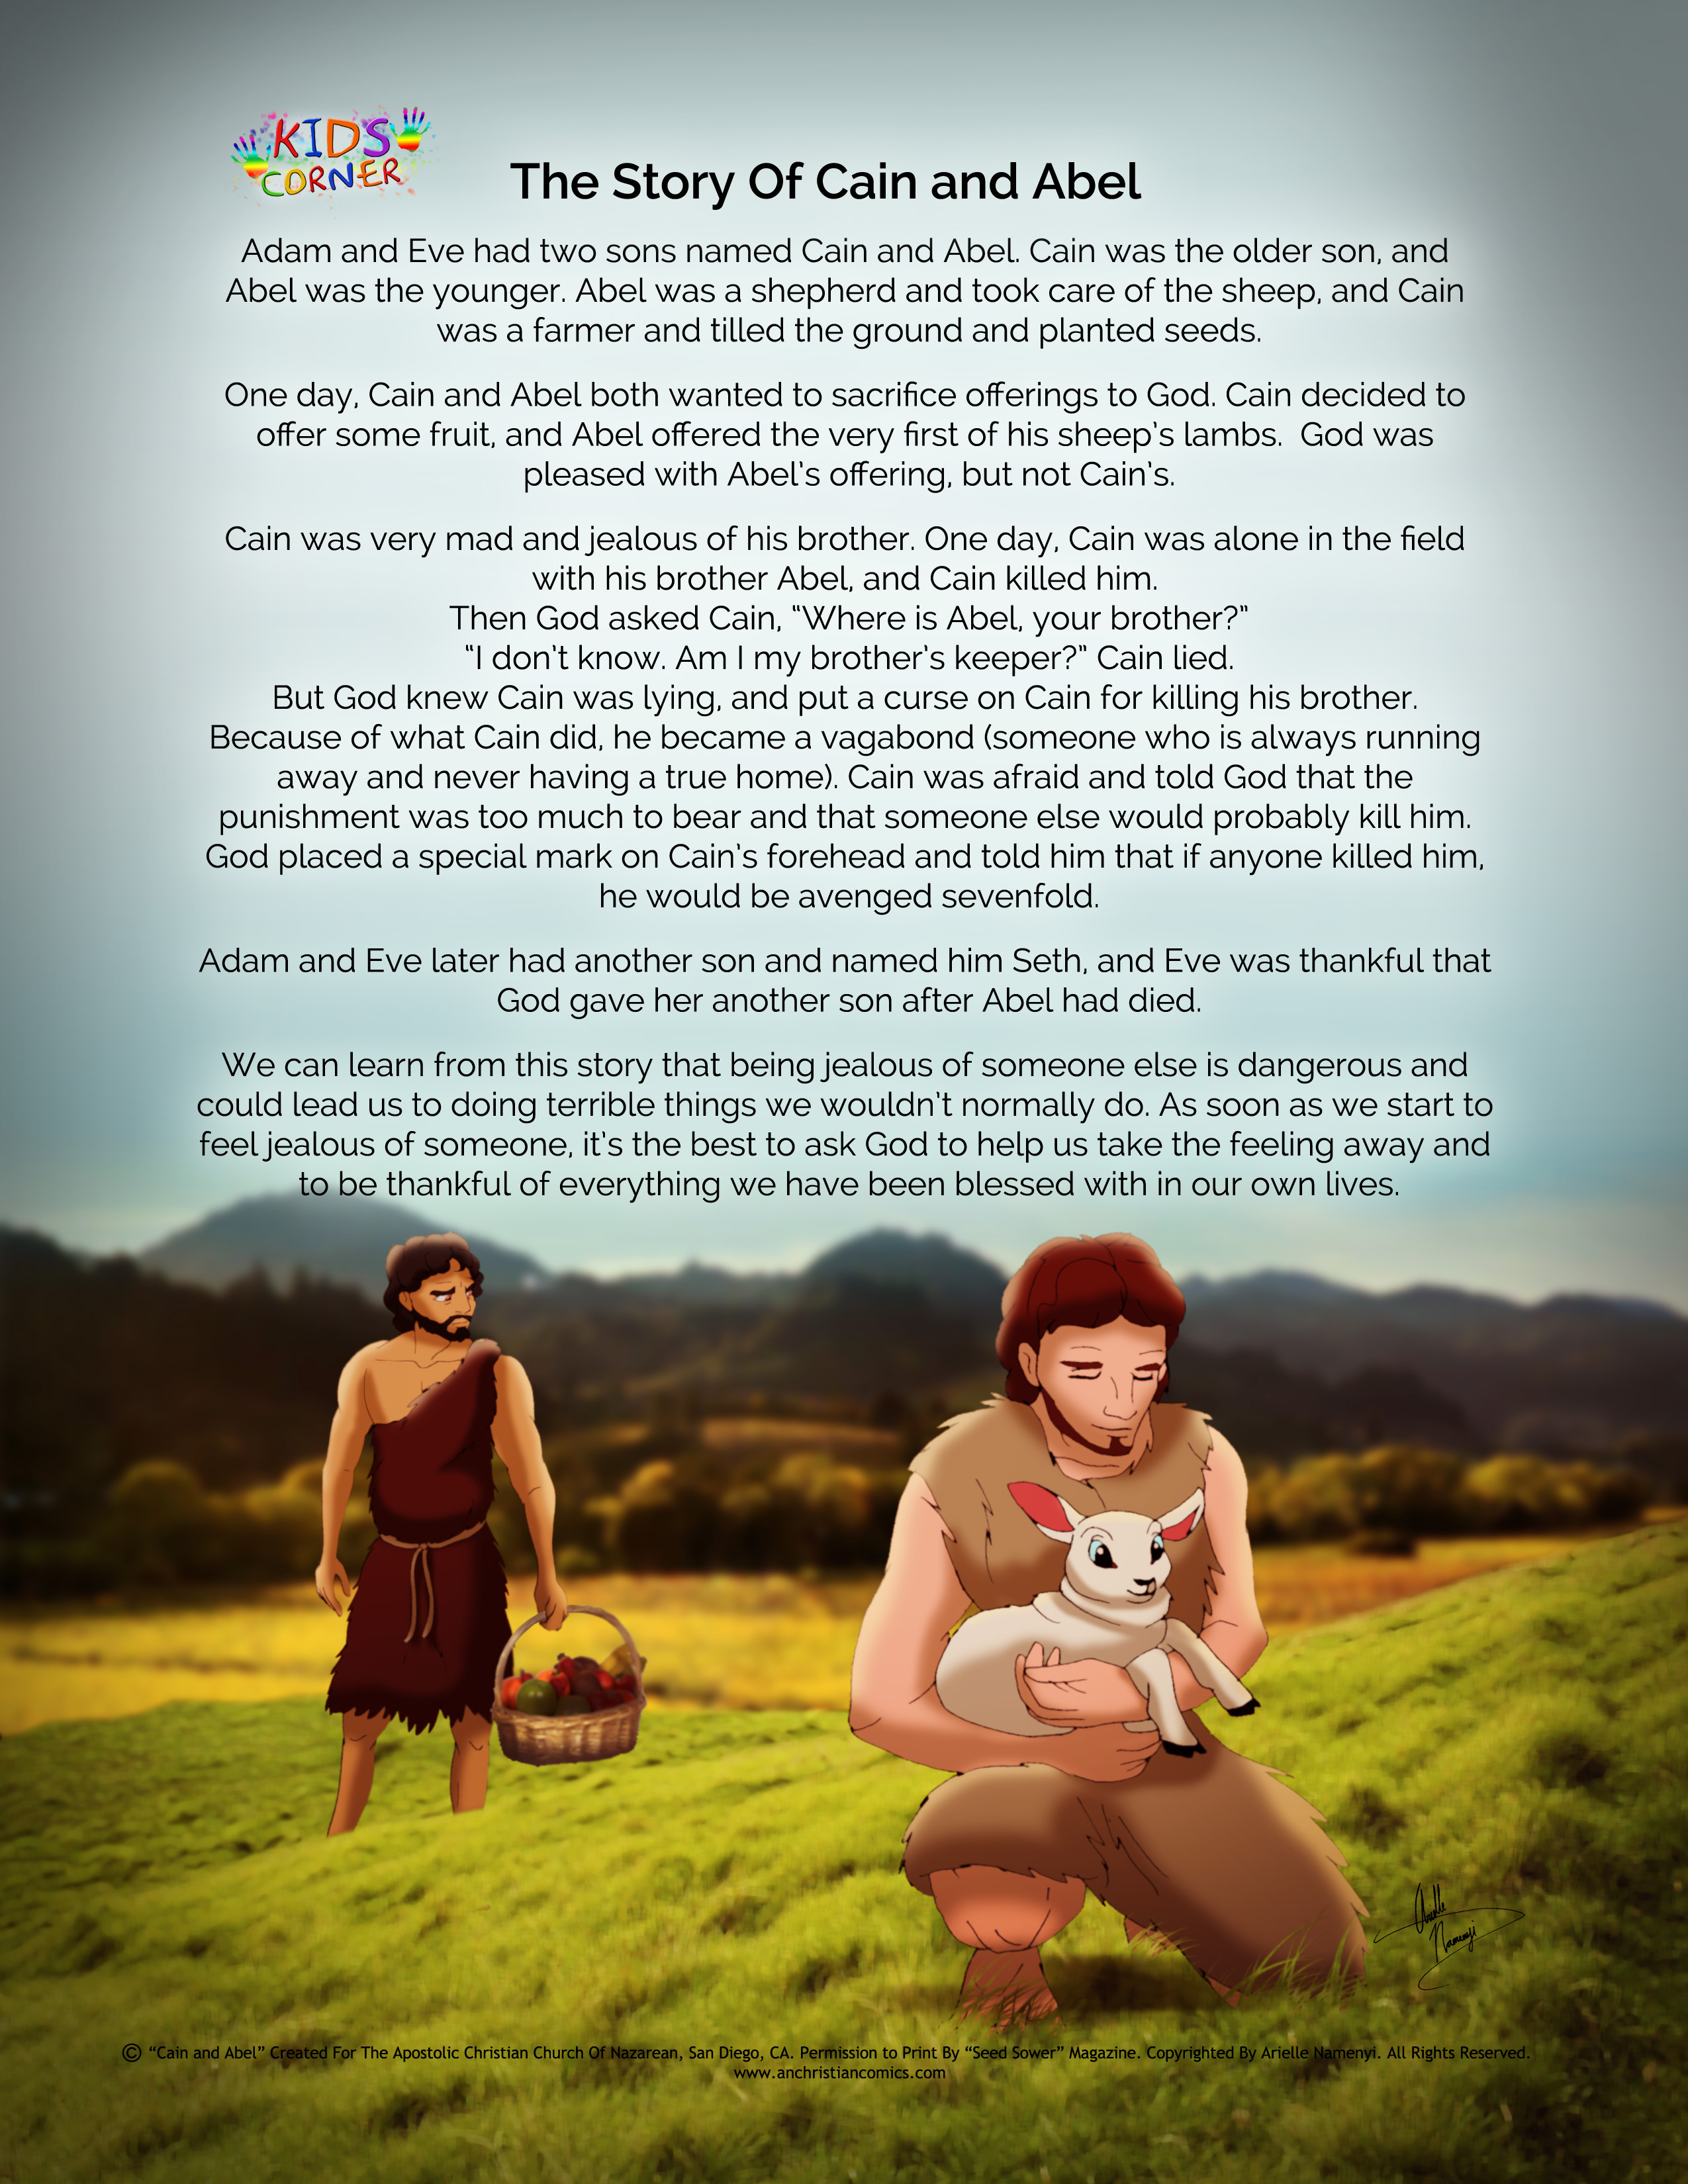 the story of cain and abel anchristiancomics